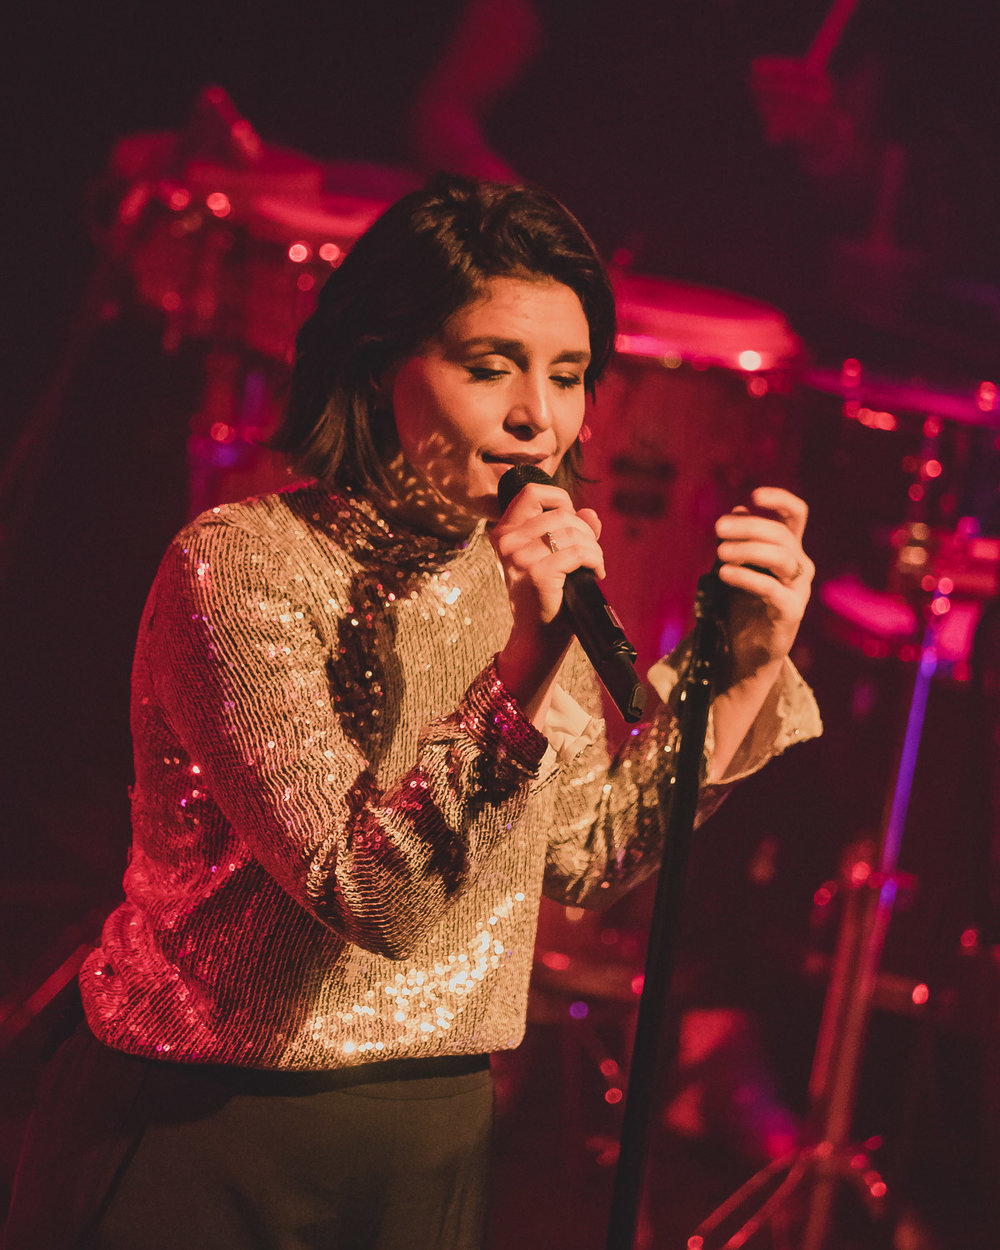 jessie_ware_110117_the_independent-6.jpg